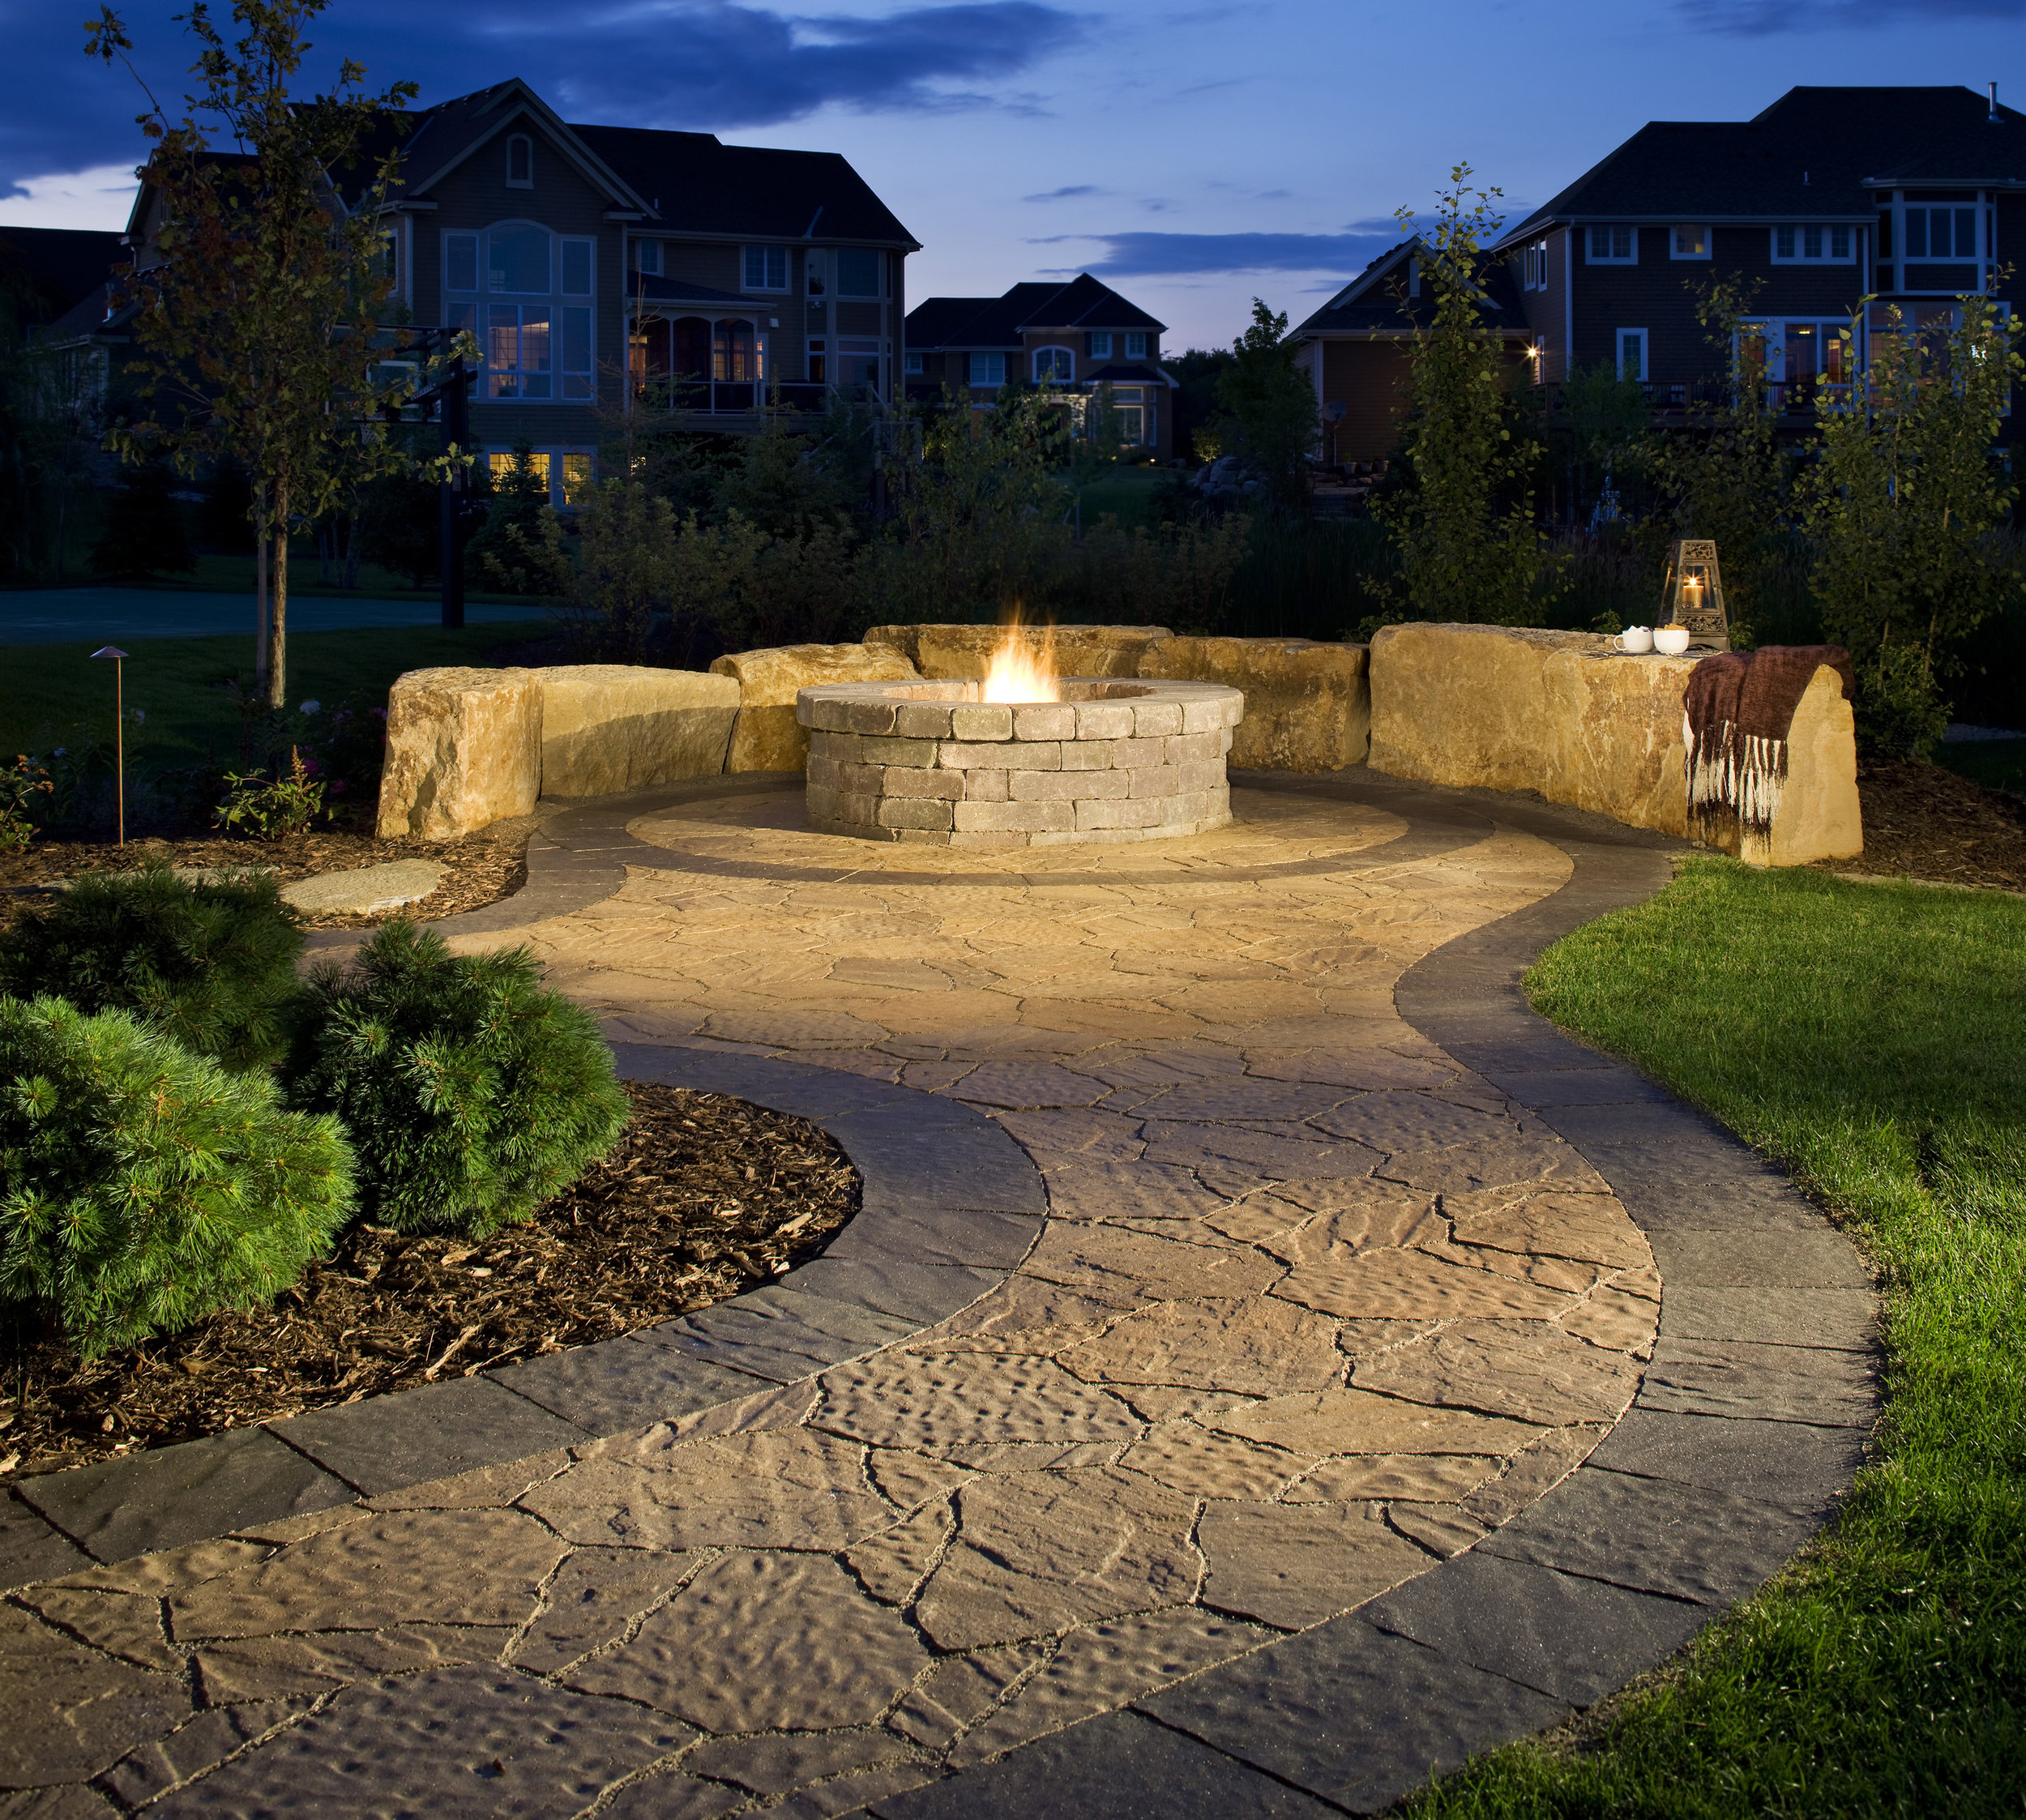 fire pit sitting wall patio natural stone pavers smores plants landscape lighting relax